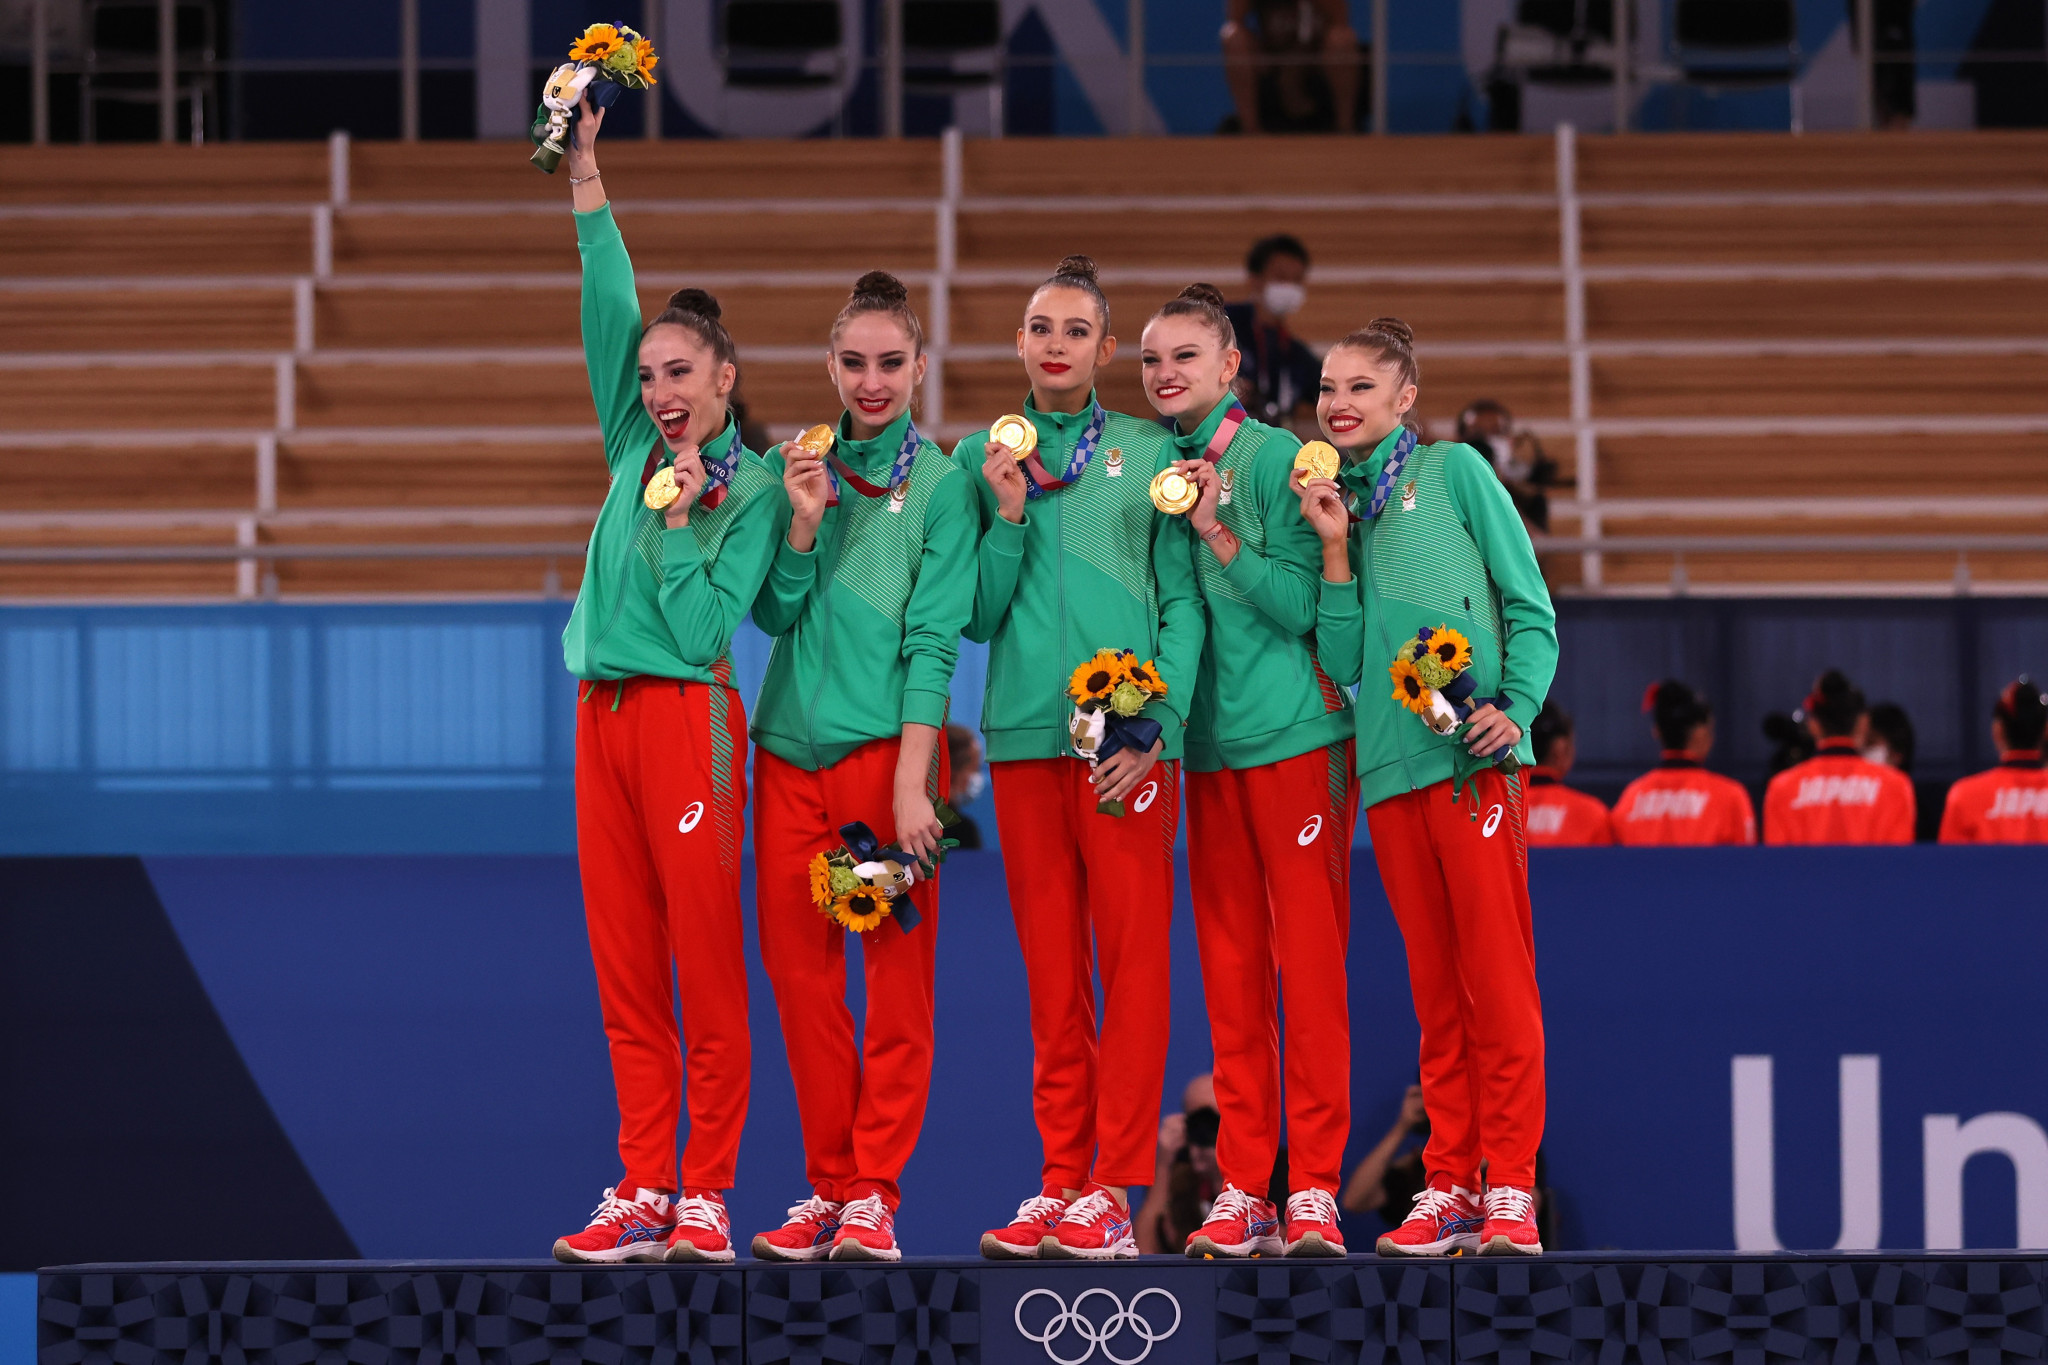 Olympic champions Bulgaria withdraw on eve of Rhythmic Gymnastics World Championships due to Traets injury